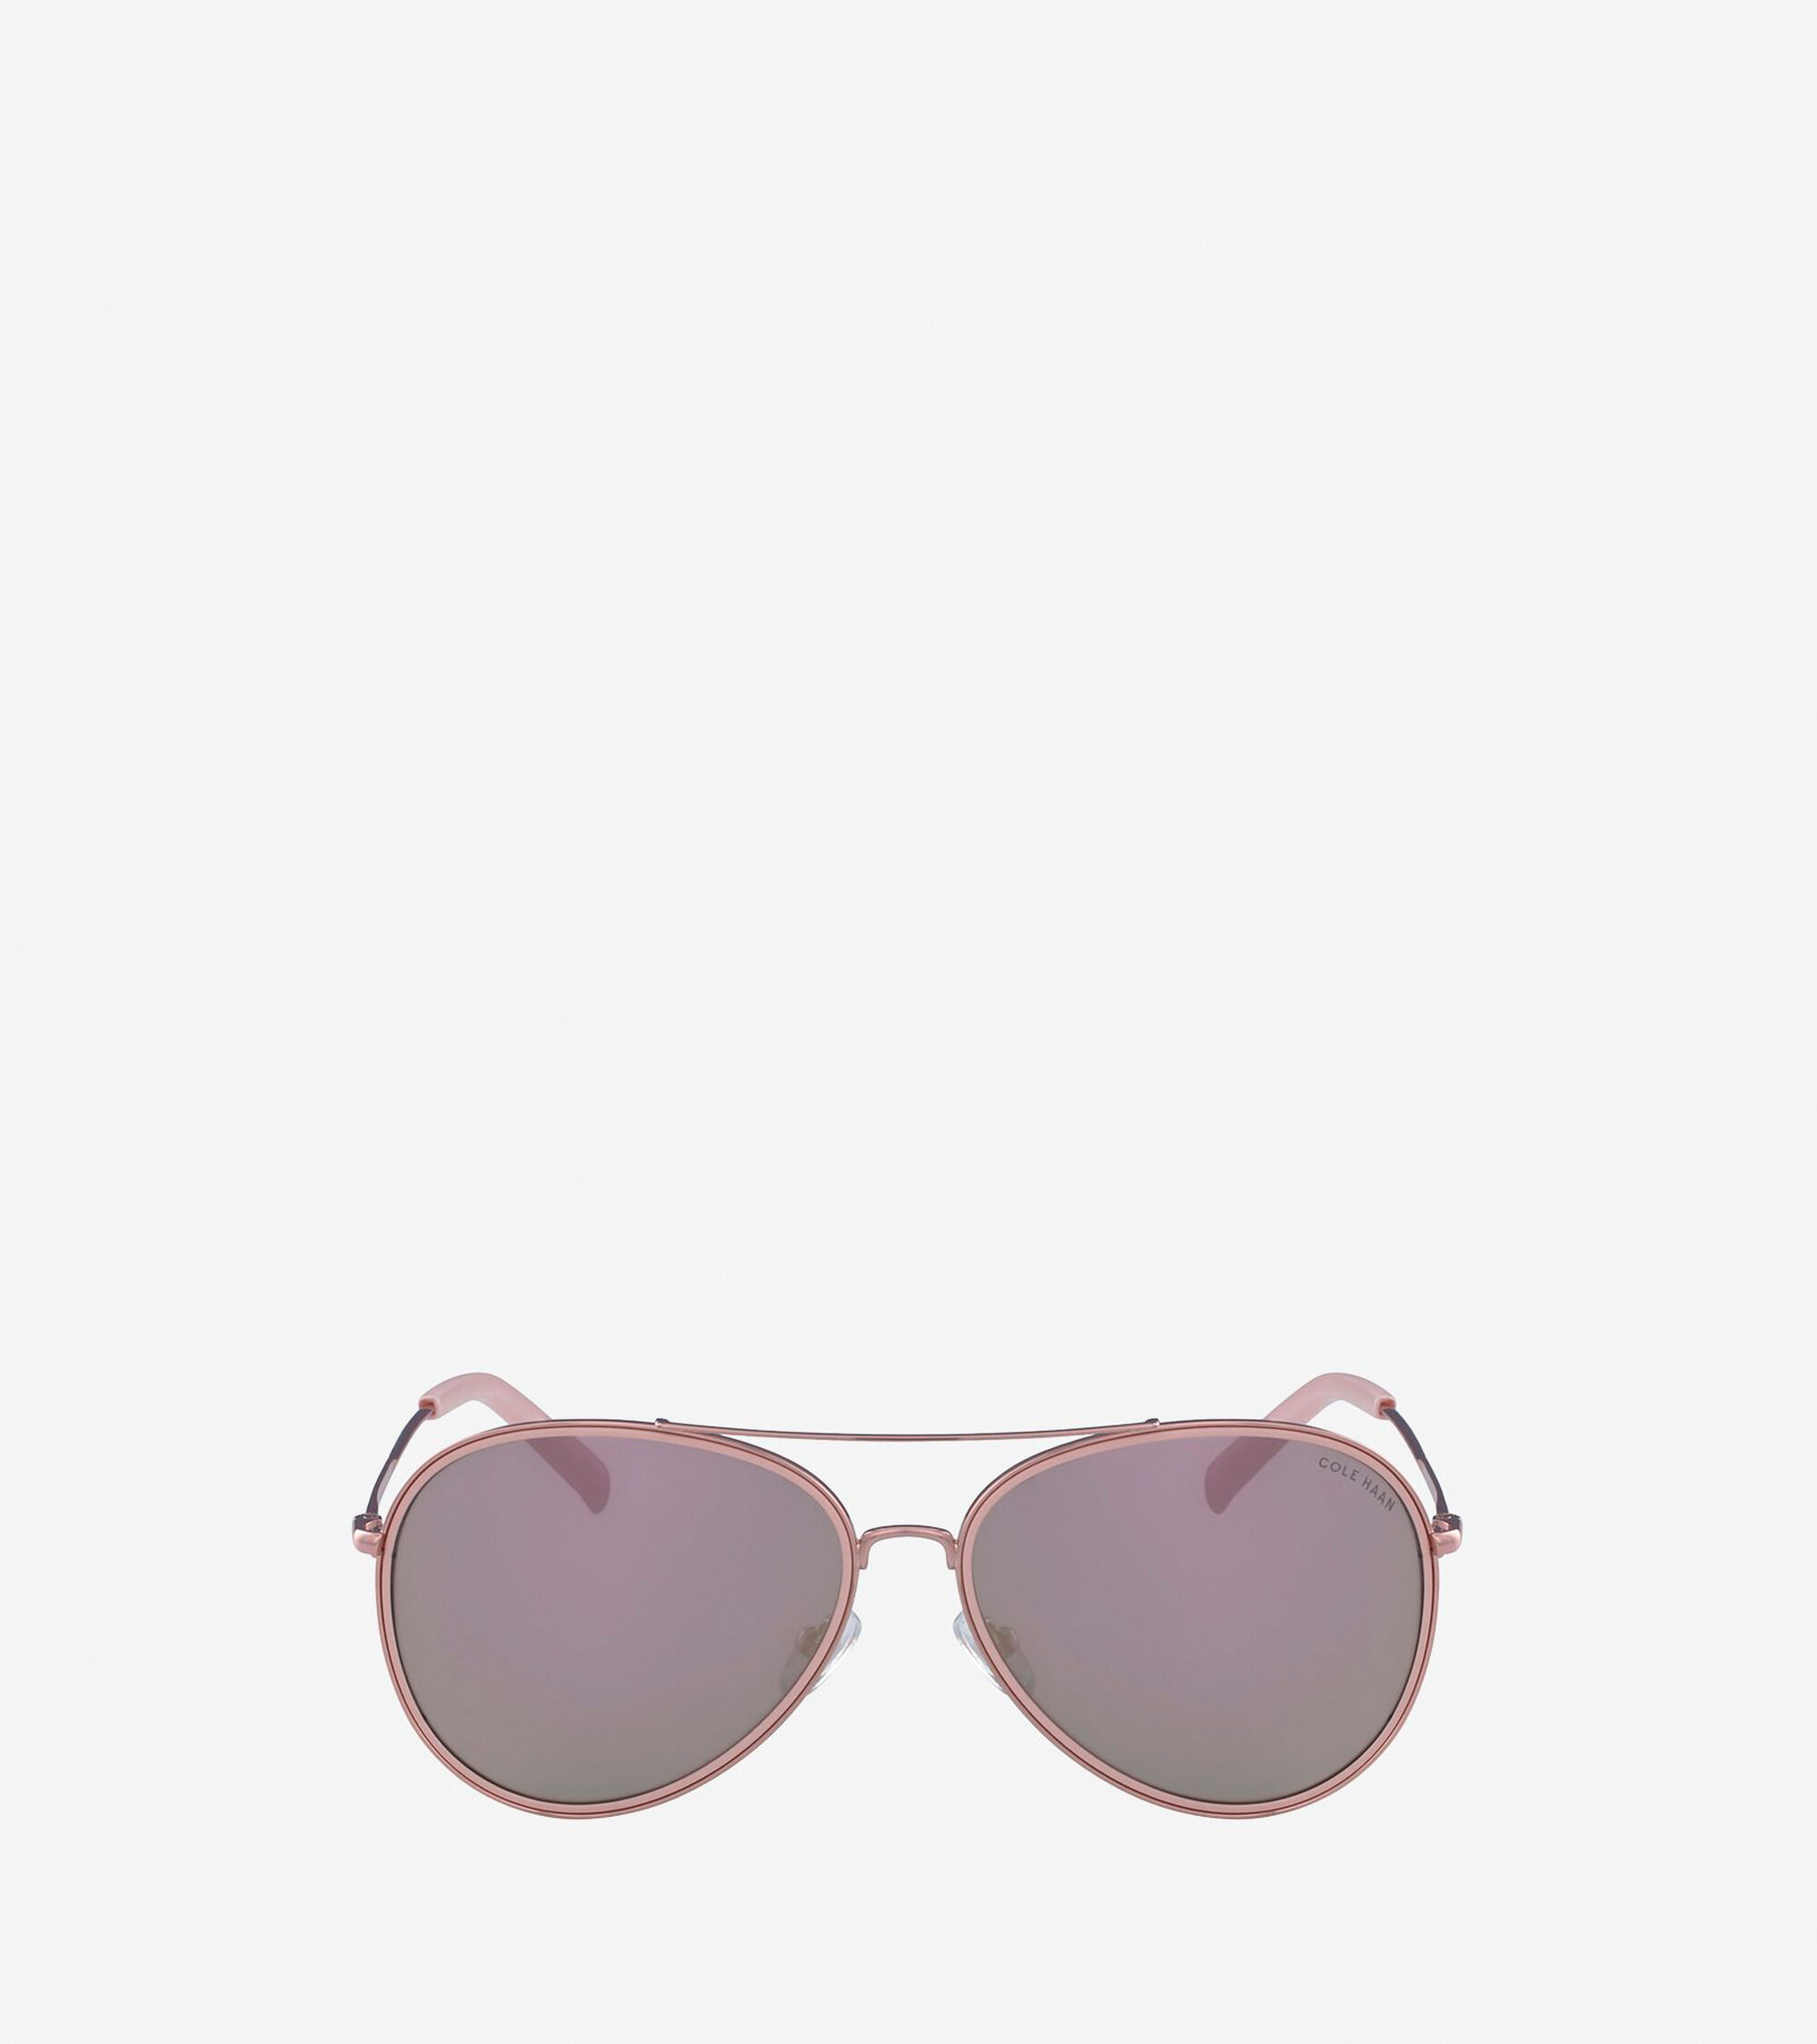 1becee85fa Women s Grand Aviator Sunglasses in Rose Gold